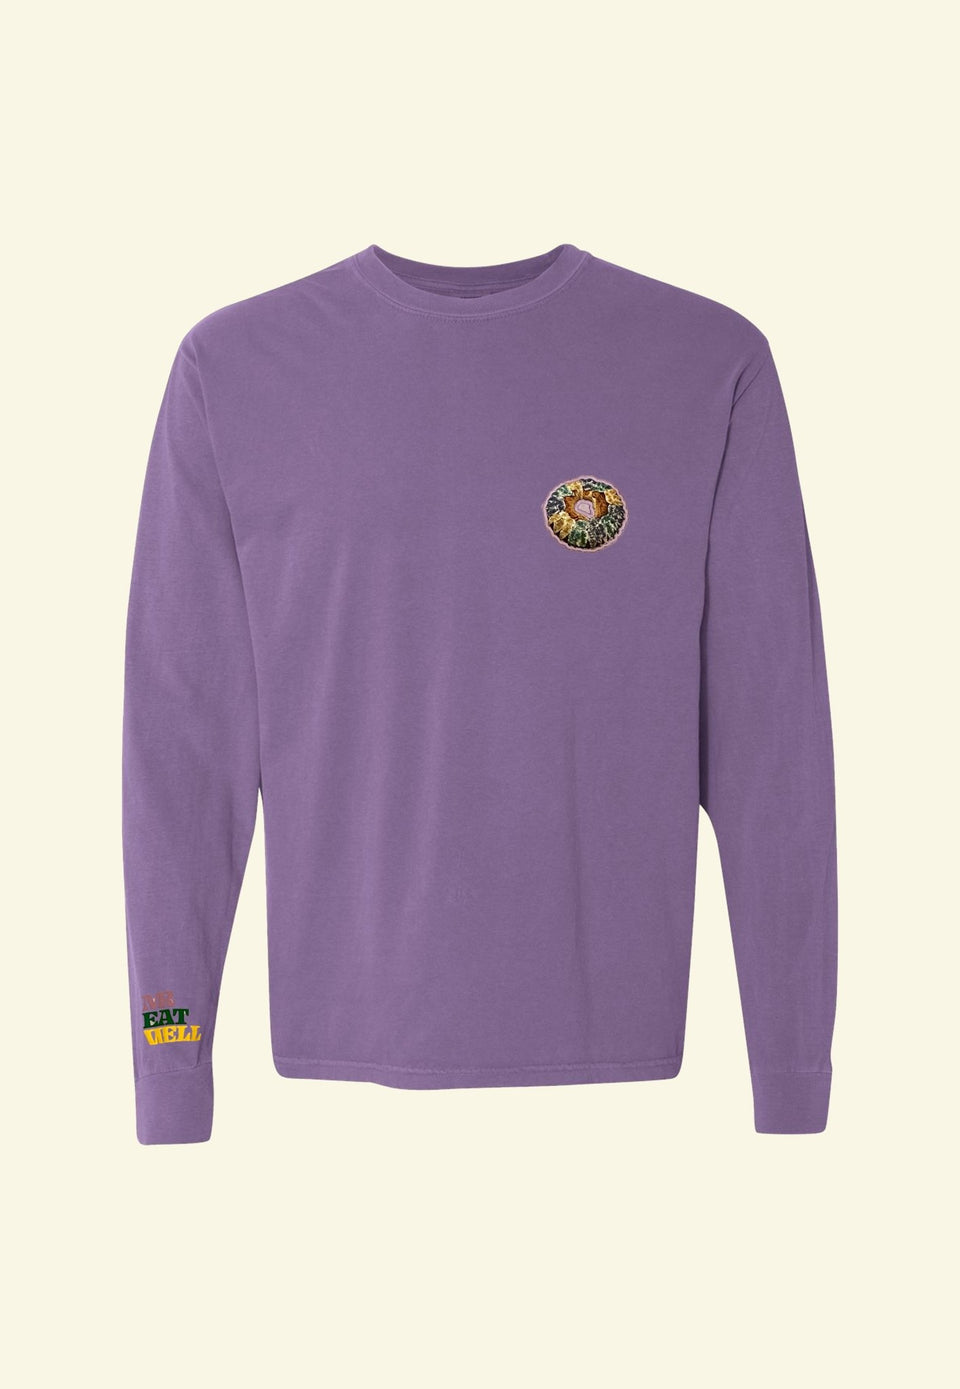 King Cake LS Tee in Two Colors - MR EATWELL